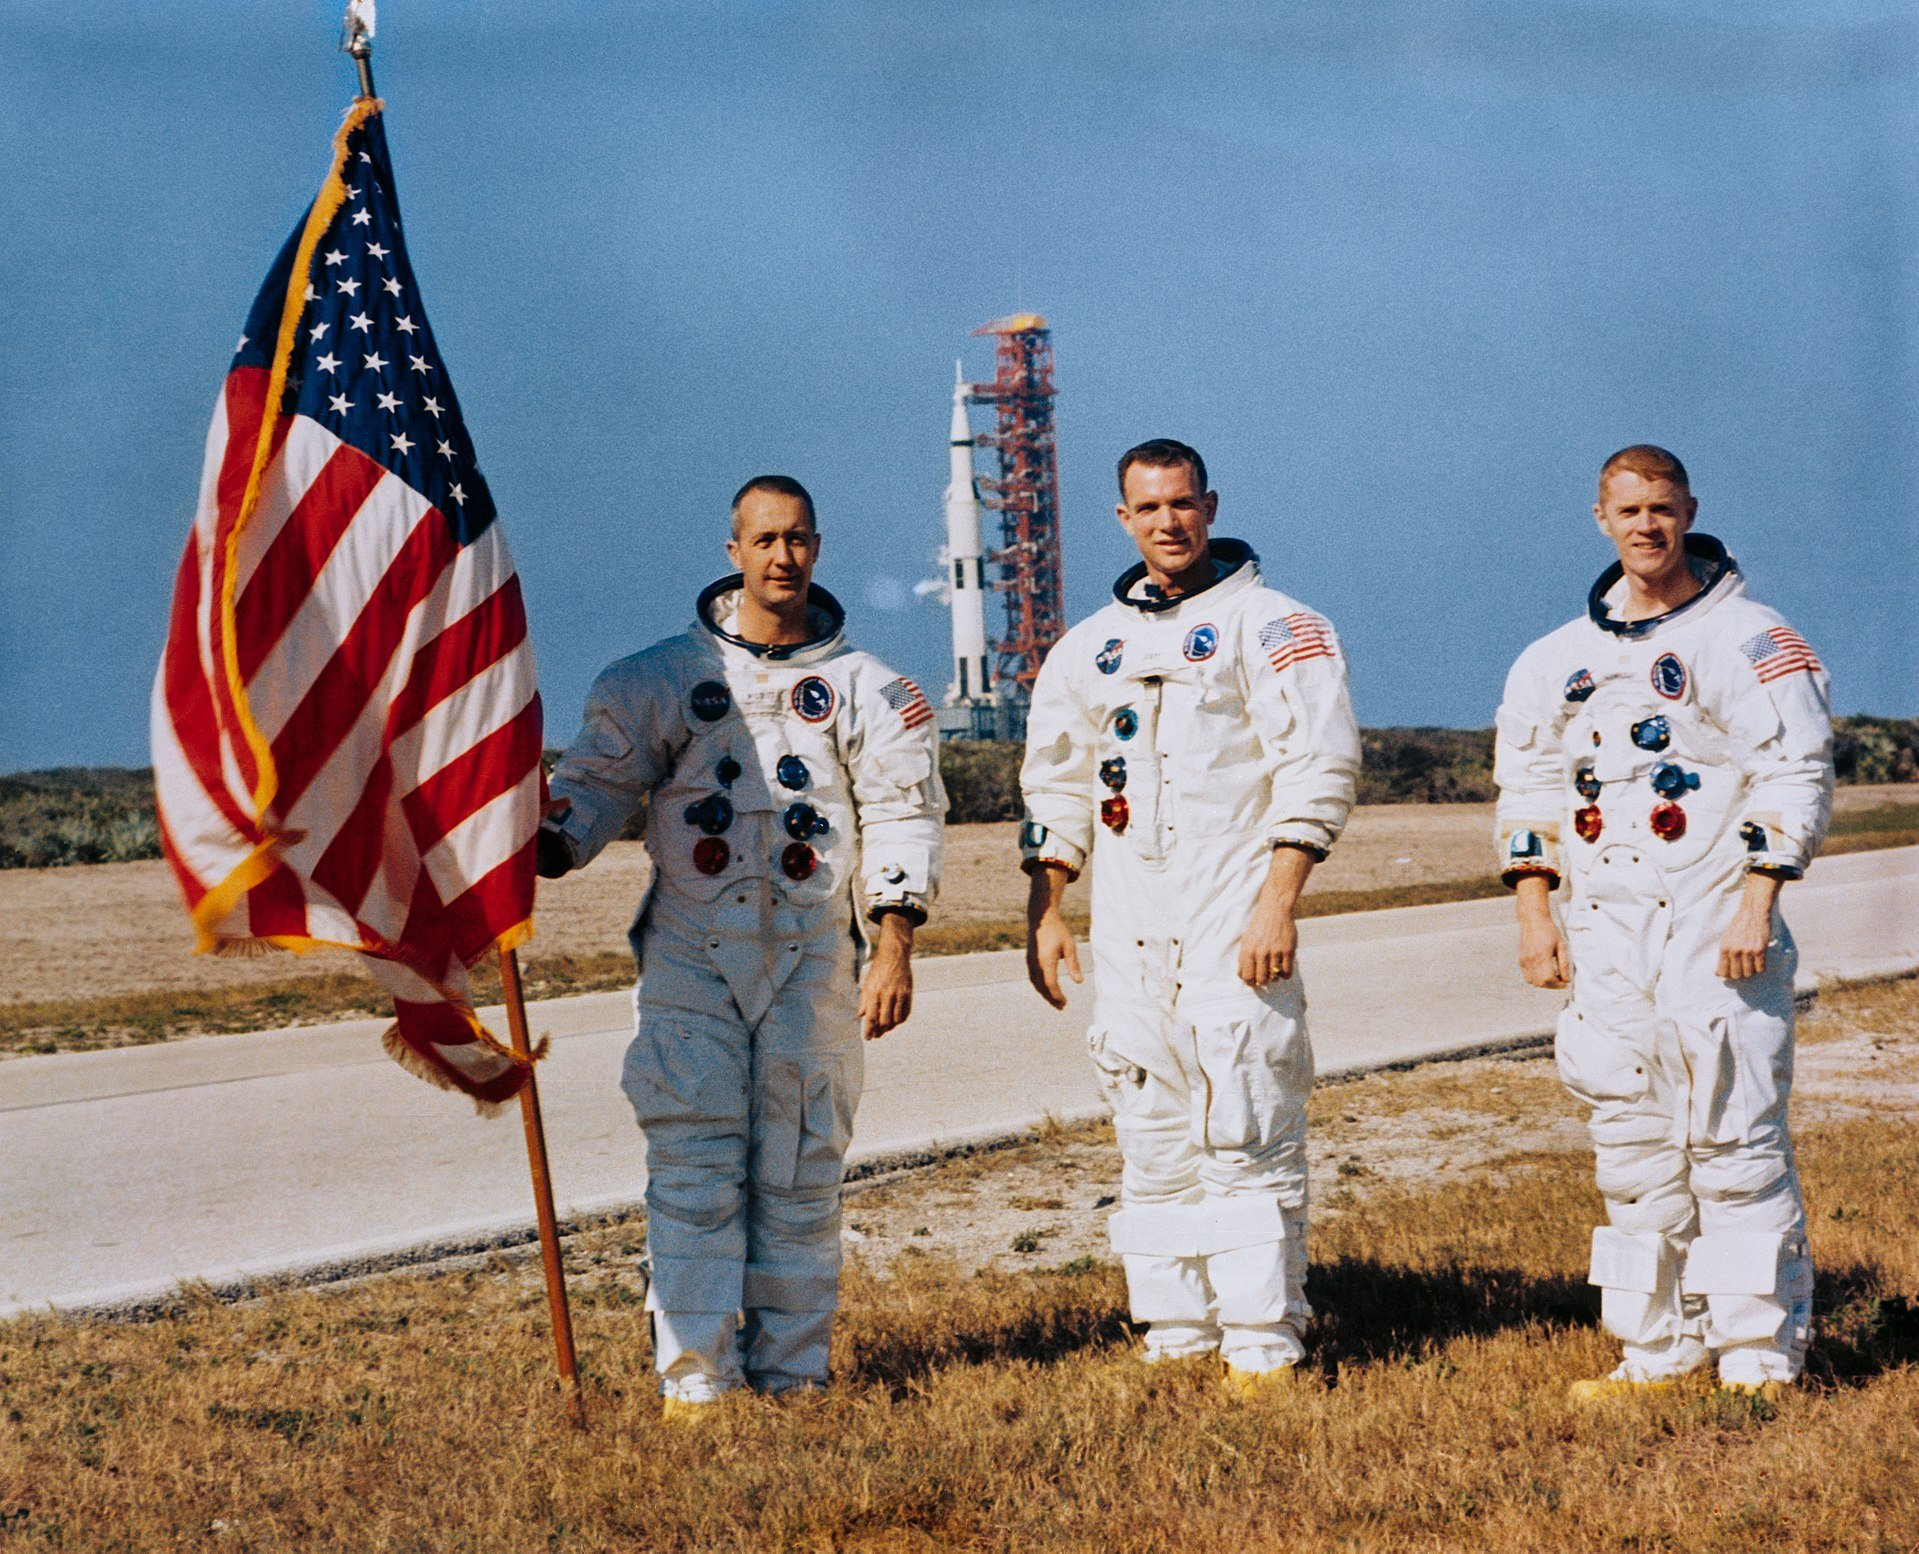 Apollo 9's James McDivitt, David Scott, and Russell Schweickart prepare for their launch. Behind them is Apollo 8's Saturn V on Launch Pad 39A. Courtesy of NASA.